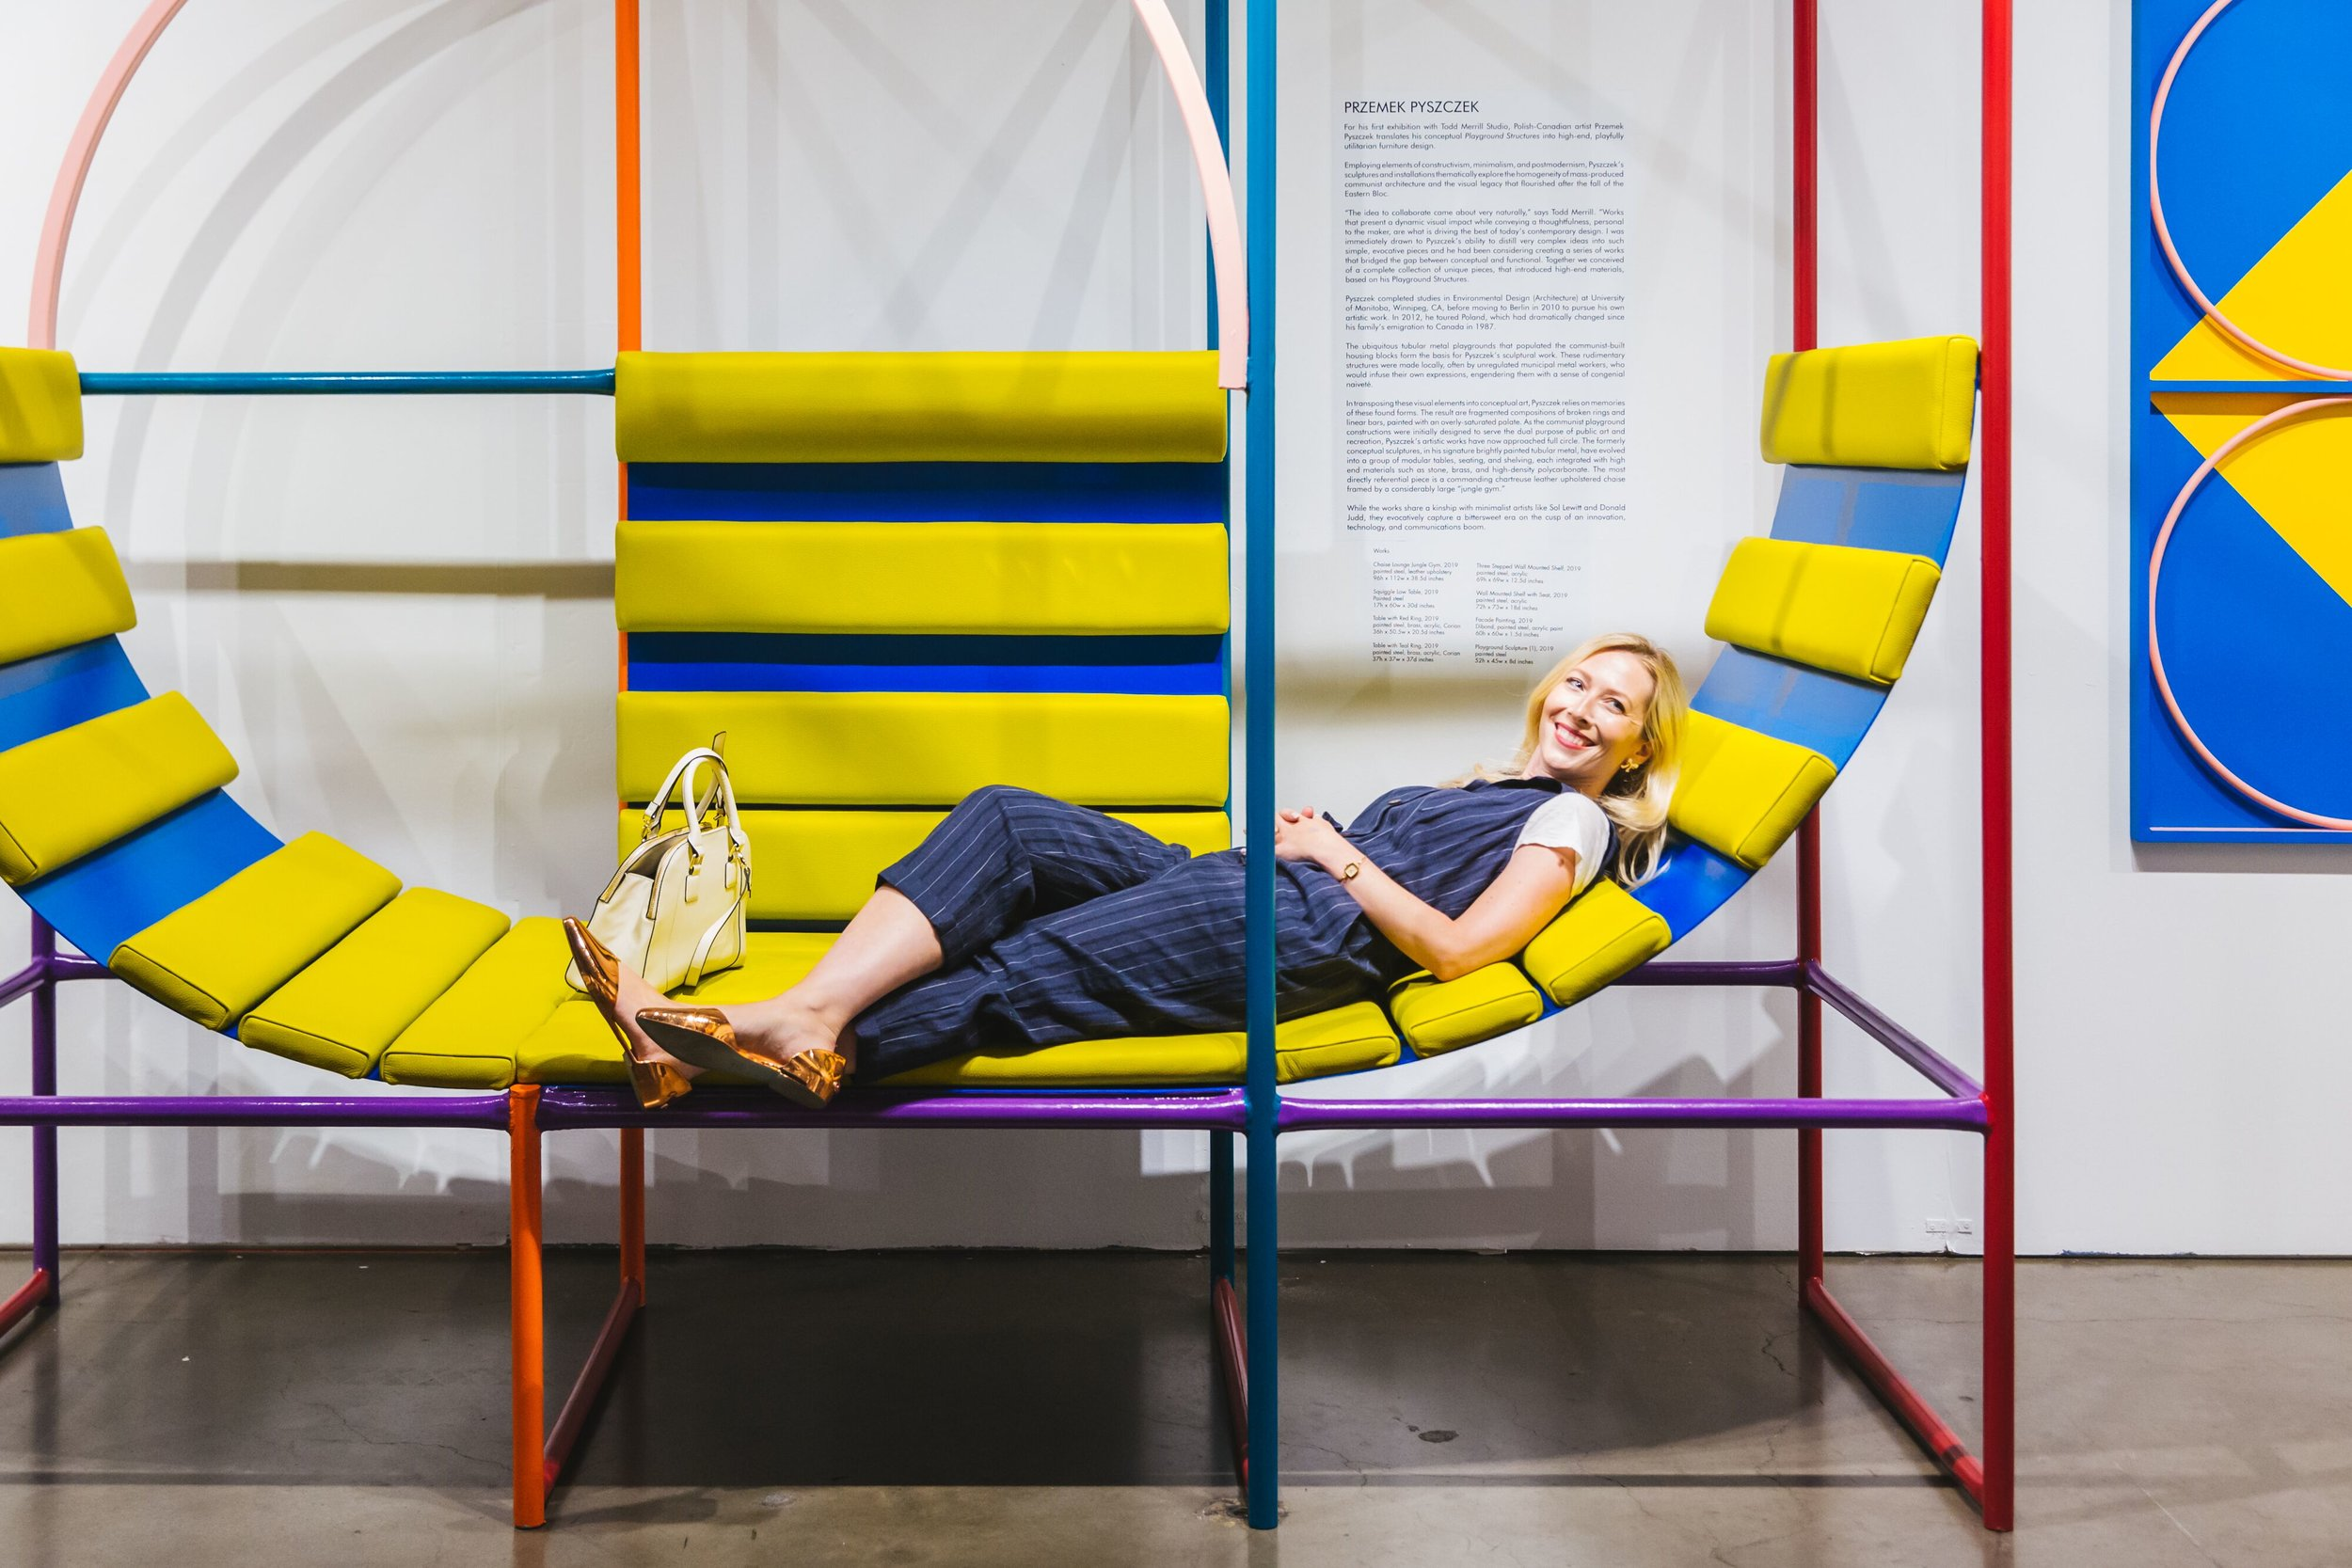 The Polish Canadian artist's  Playground Structures  takes his colorful postmordern designs and brings them to a world of functioning art that is playful, durable and stunning.